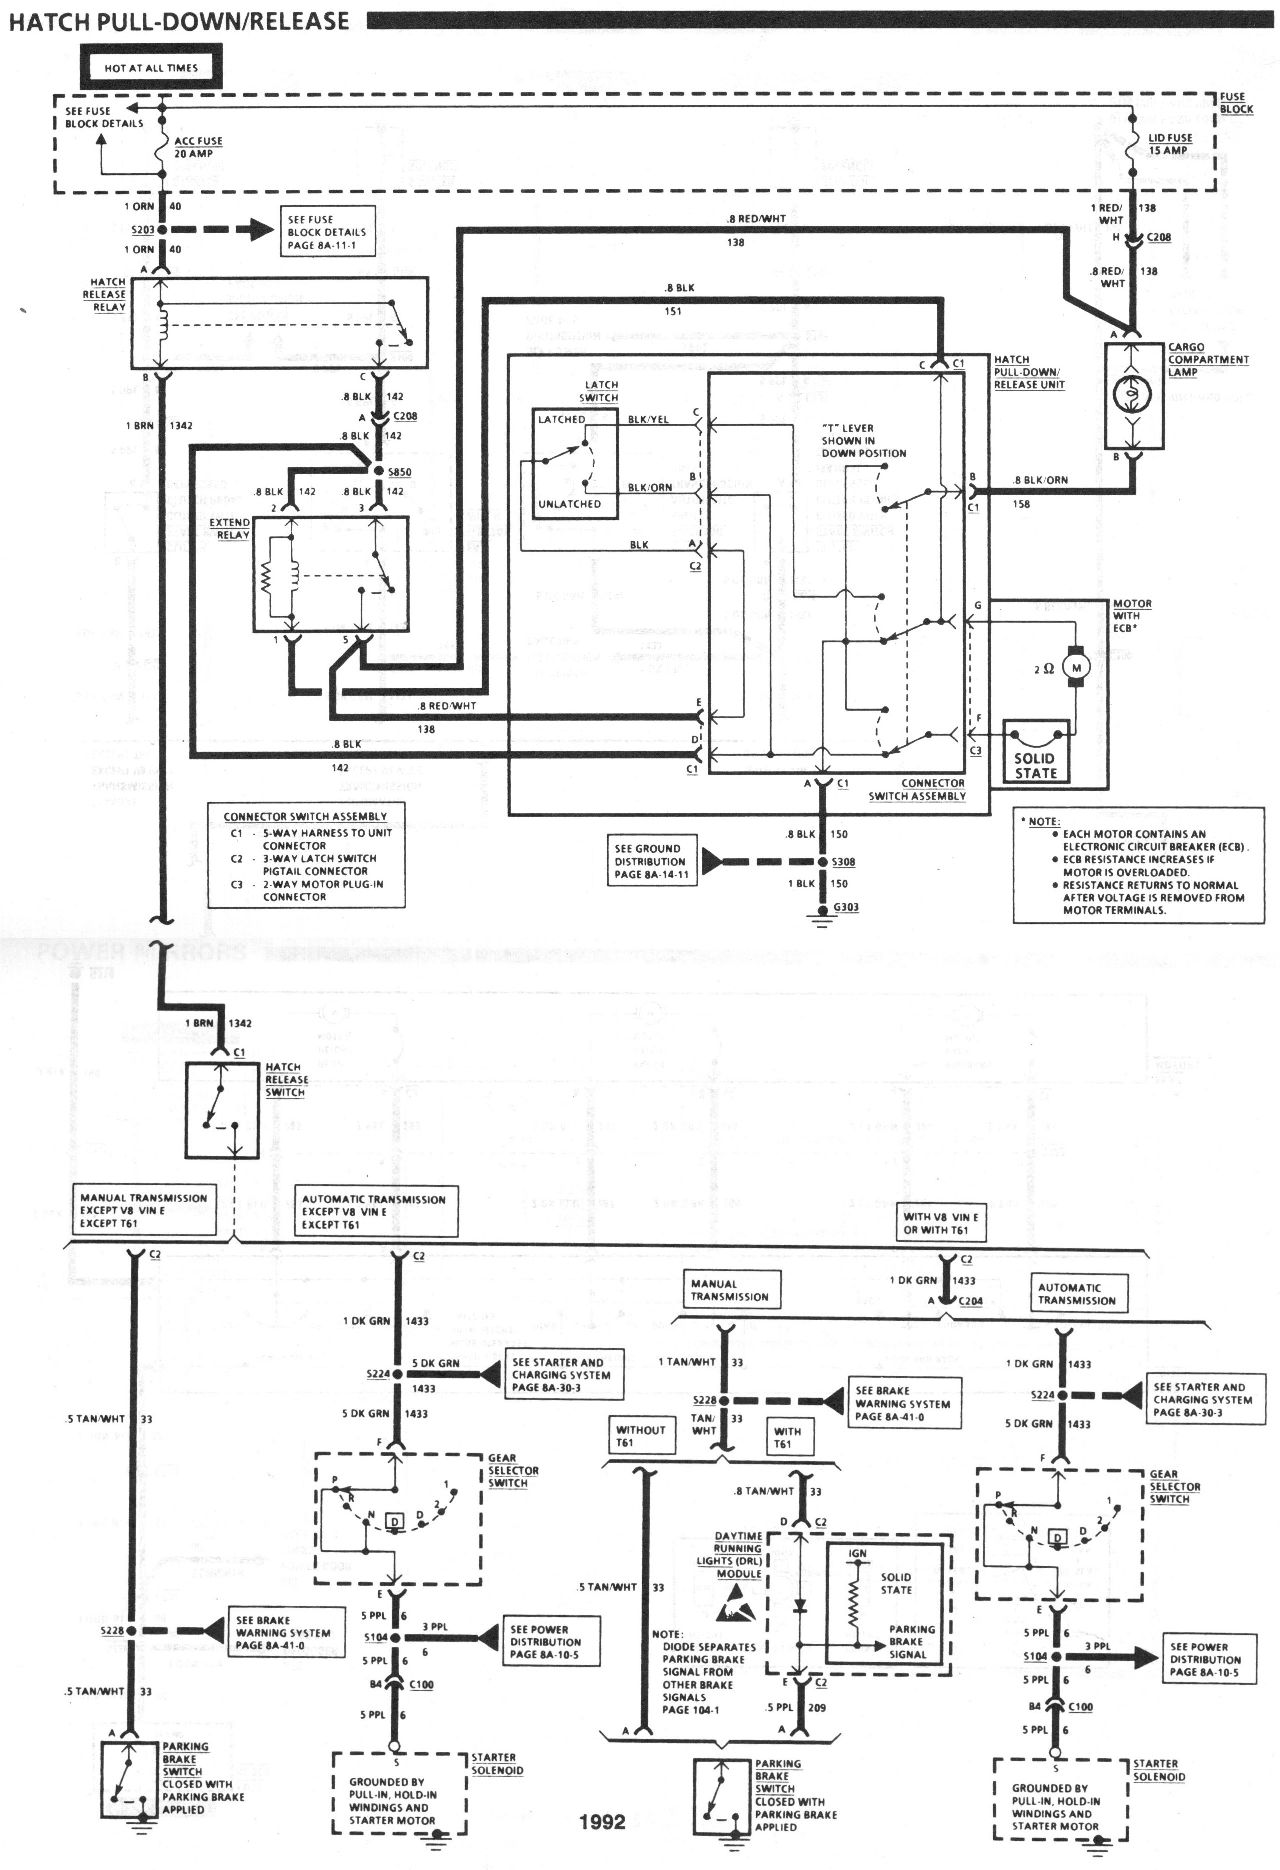 89 Iroc Wiring Diagram Automotive Diagrams For Camaro Vats Fuse Box 16 Images 90 Seats